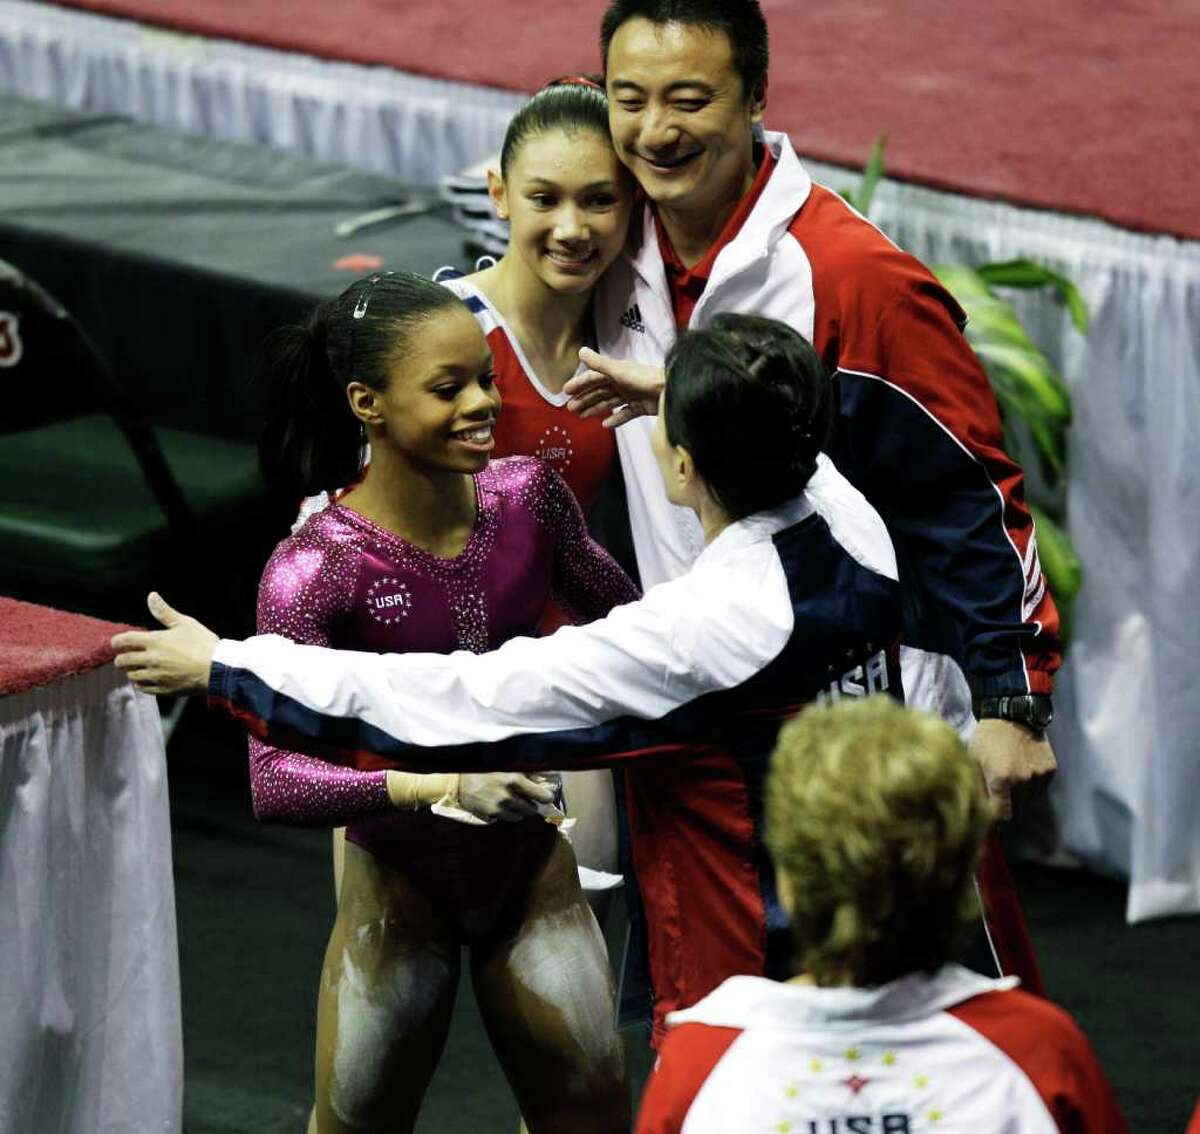 United States gymnasts Gabrielle Douglas, left, and Kyla Ross, second from left, hug their coaches after Douglas took first and Ross took second in the uneven bars, Sunday, March 18, 2012, in the Pacific Rim Gymnastics Championships in Everett, Wash.